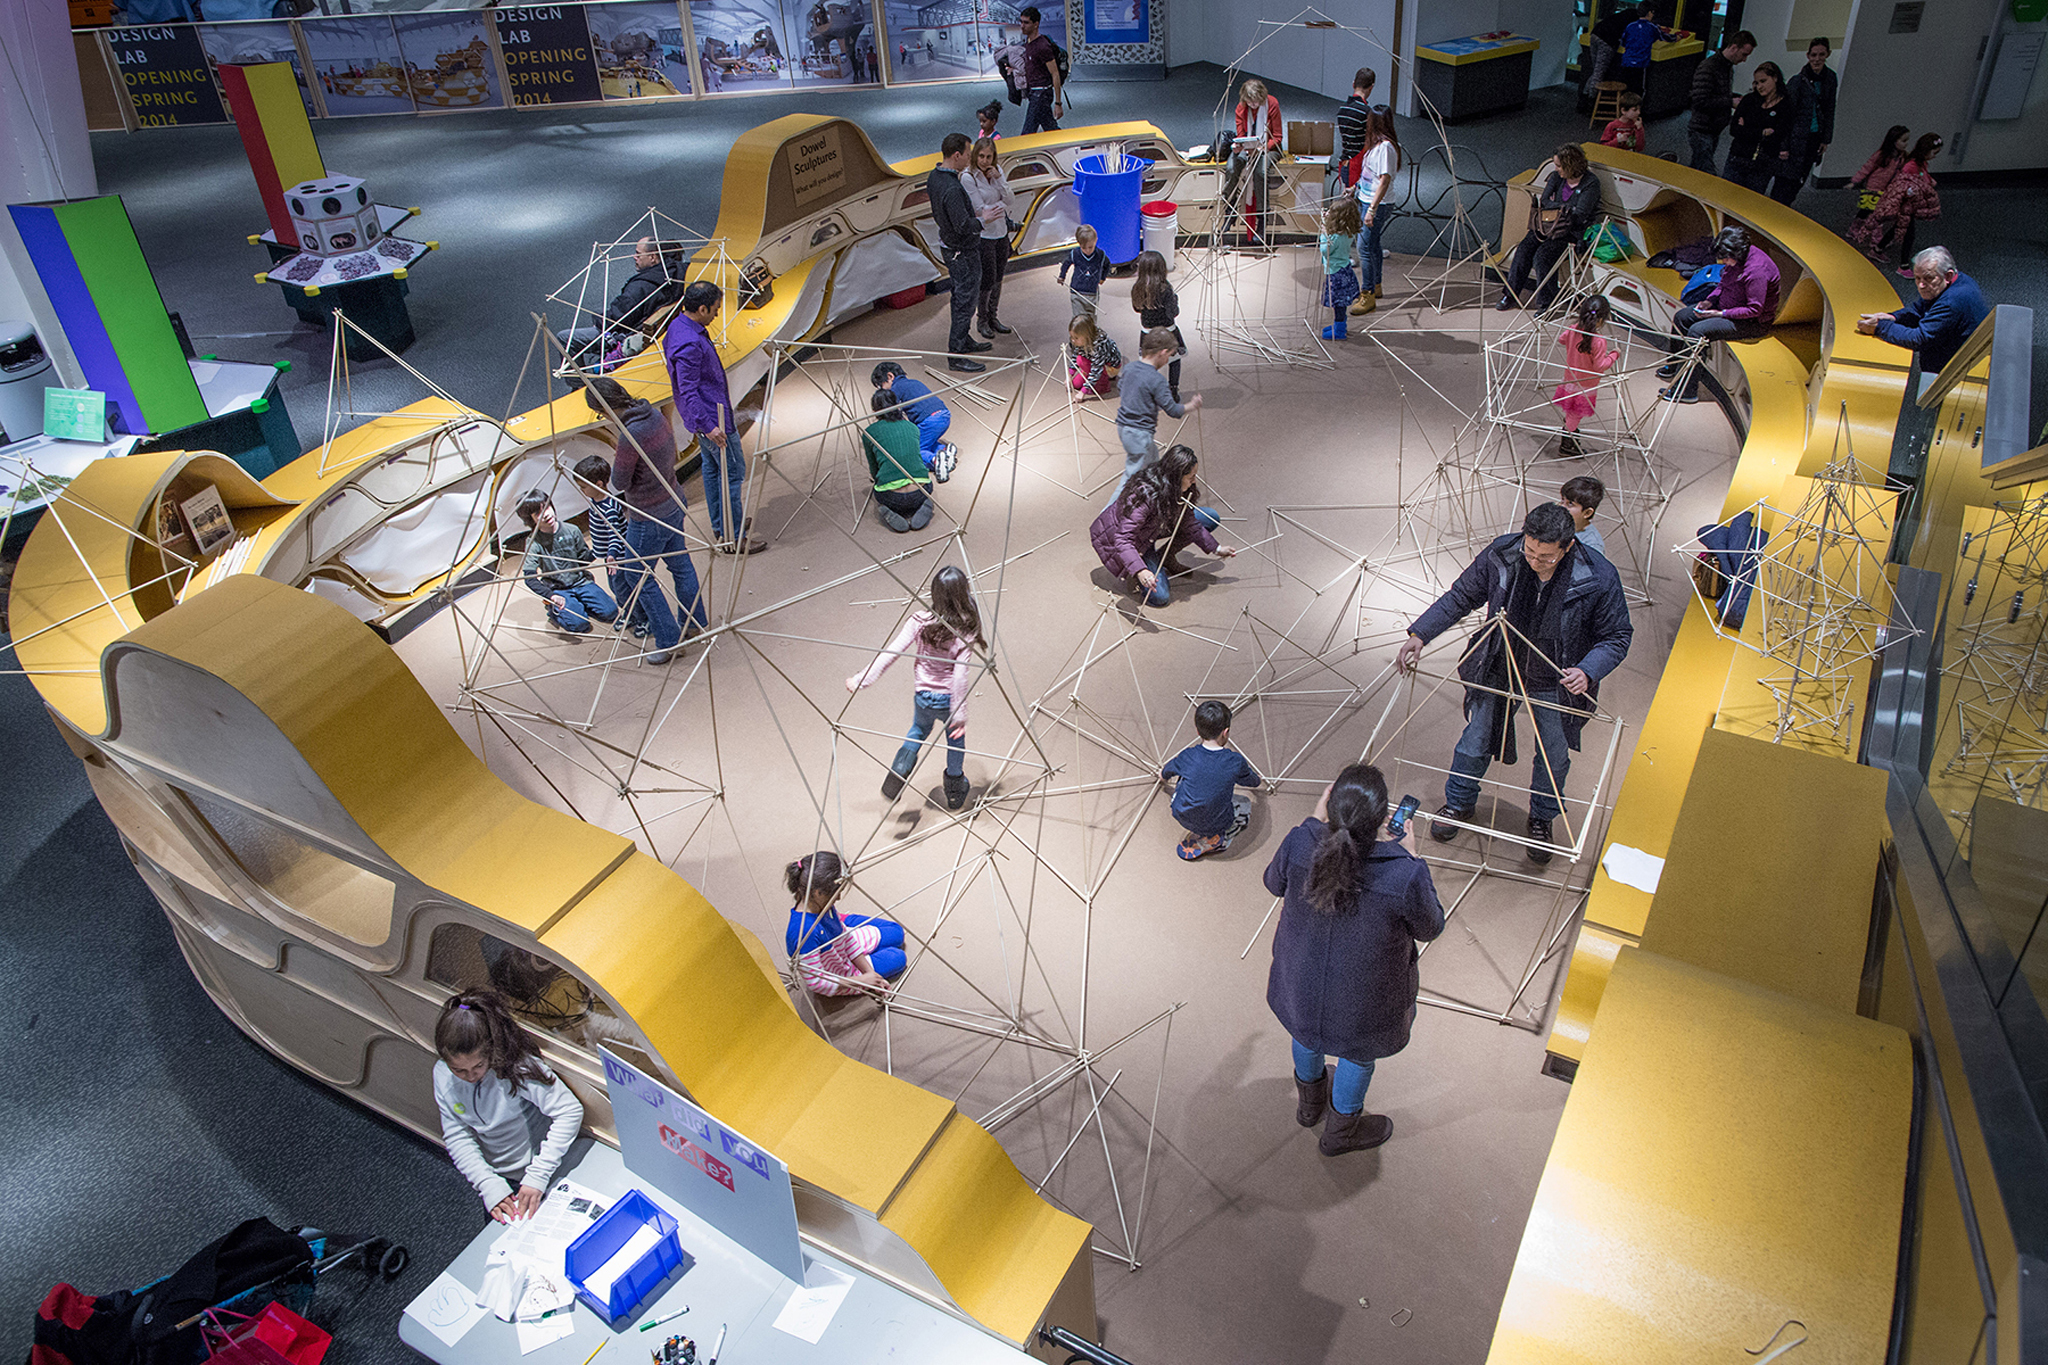 Design Lab at New York Hall of Science